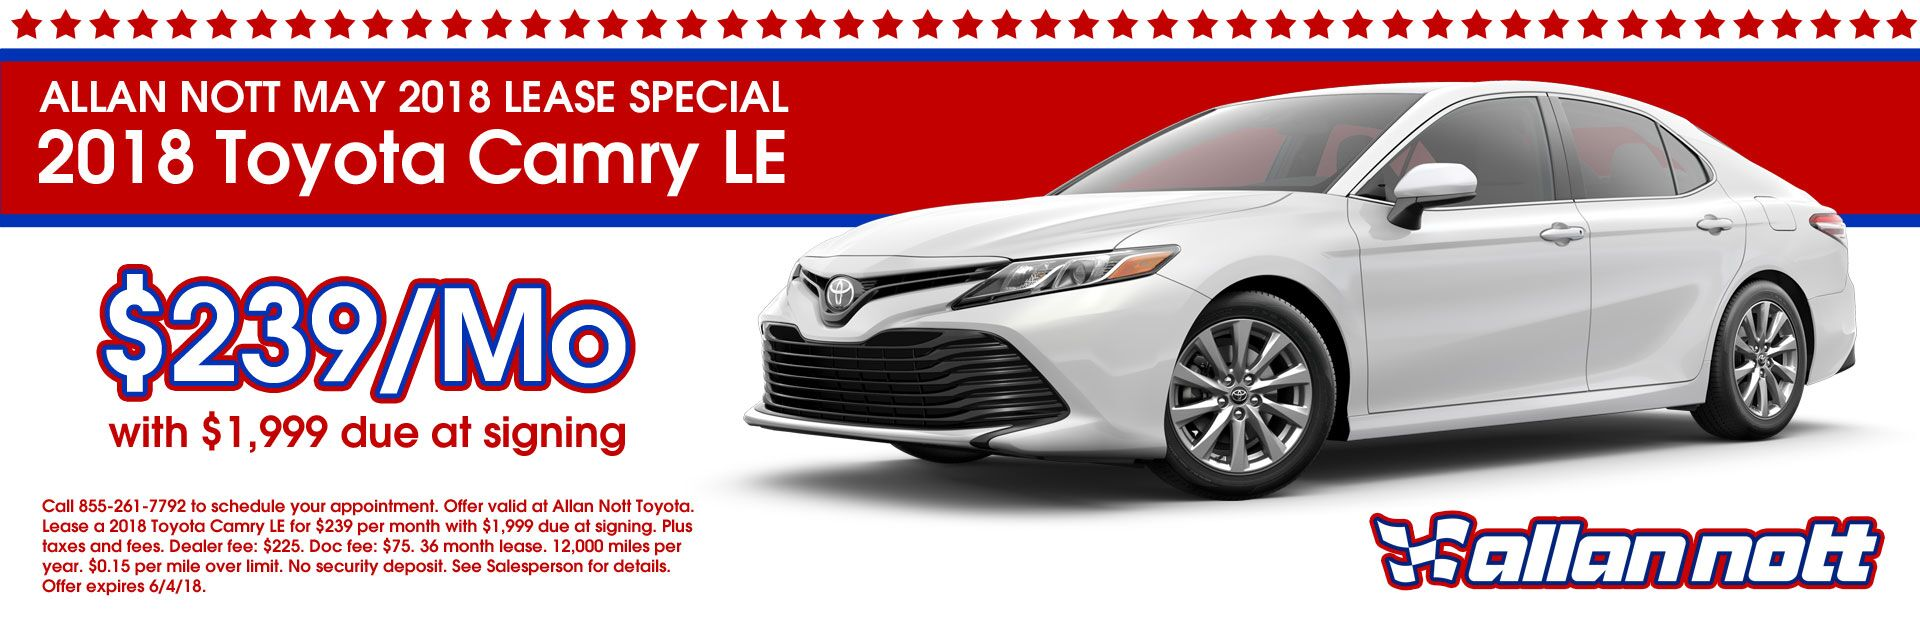 May 2018 Toyota Camry LE Lease Special